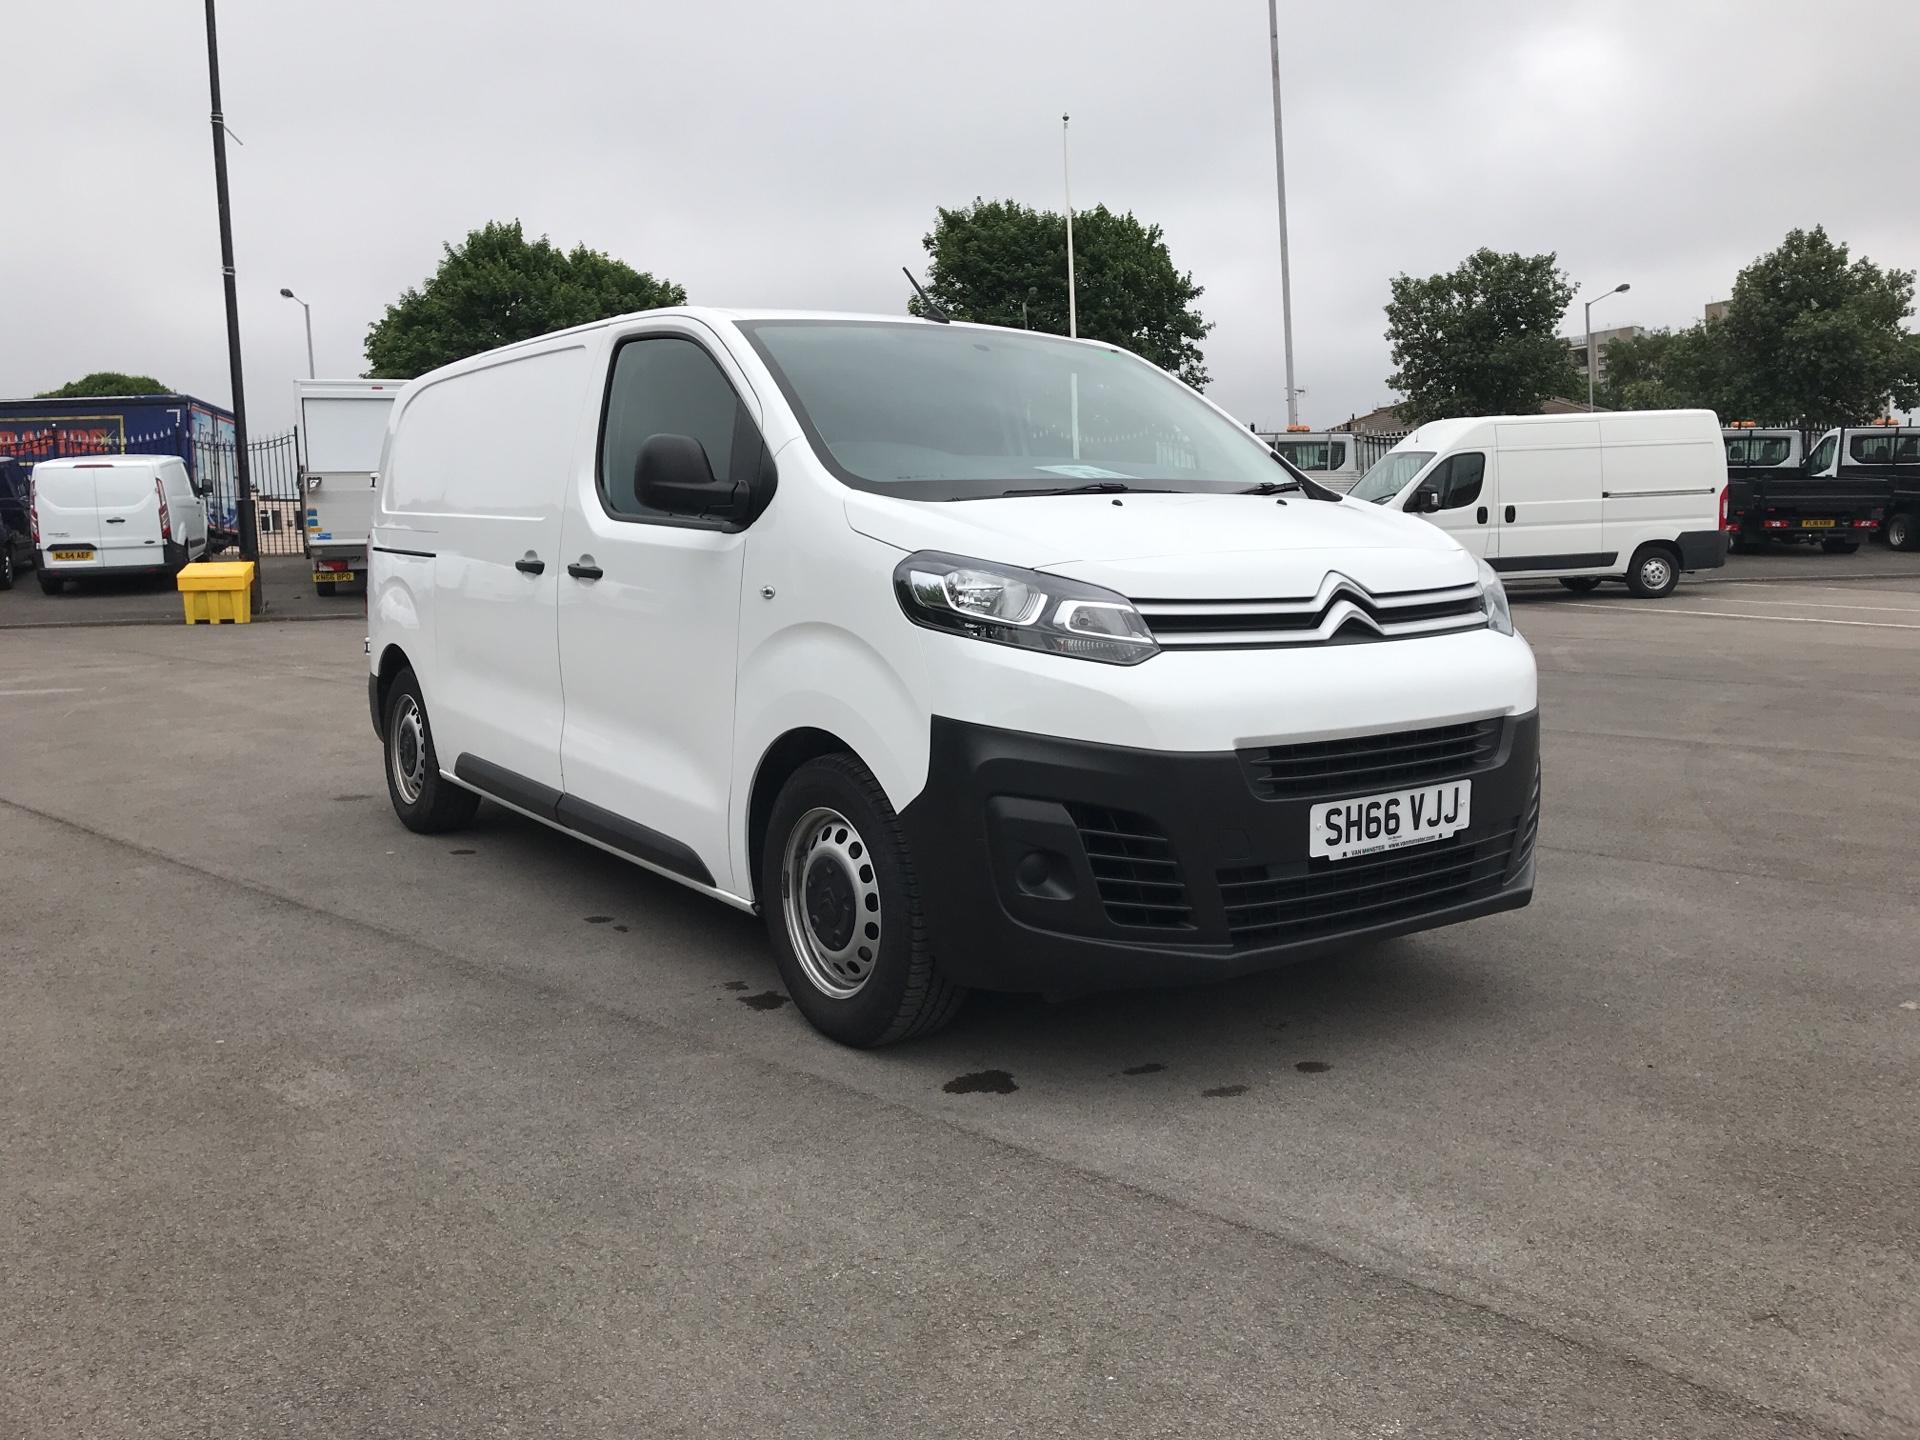 2016 Citroen Dispatch 1.6 BlueHDI 95 VAN X EURO 6 (SH66VJJ)